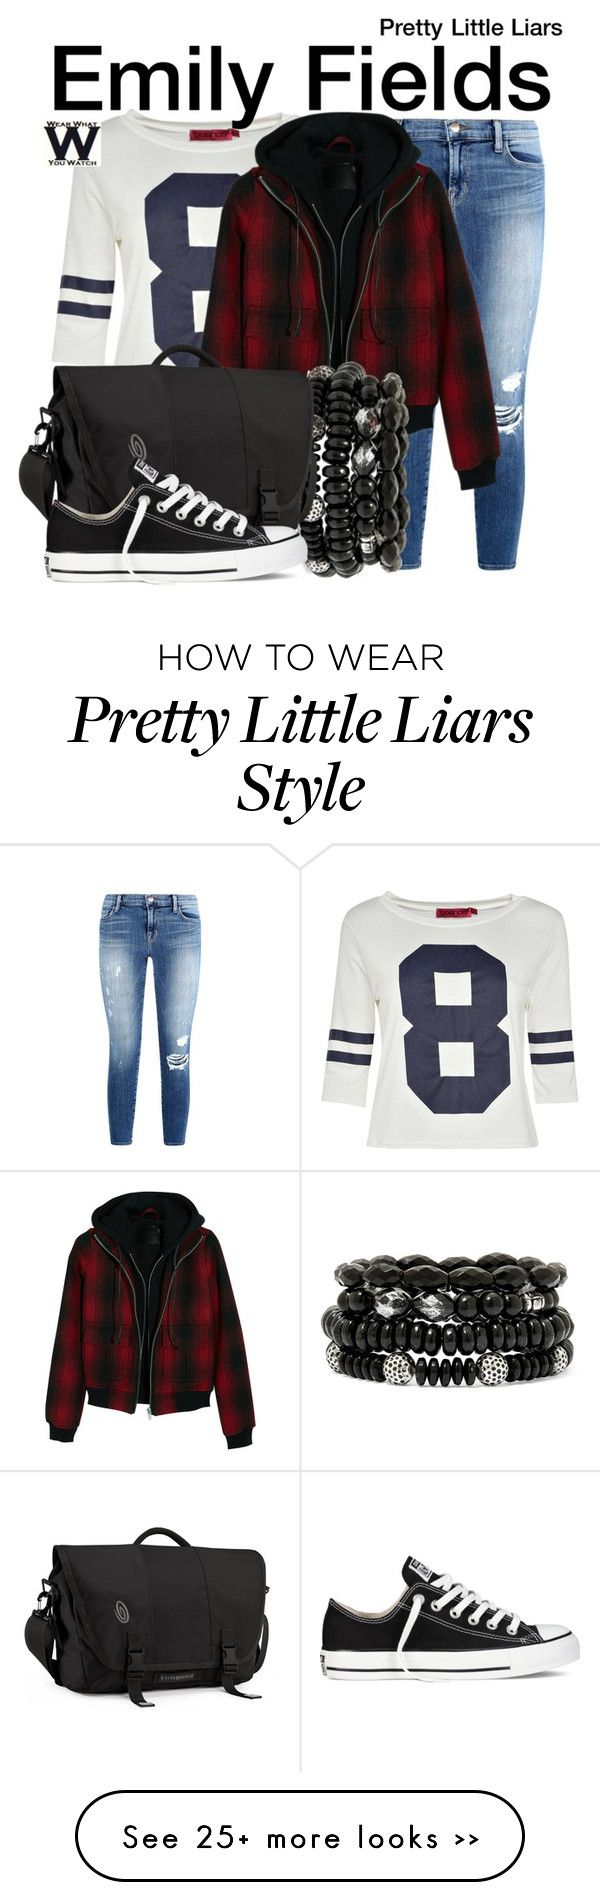 """Pretty Little Liars"" by wearwhatyouwatch on Polyvore"